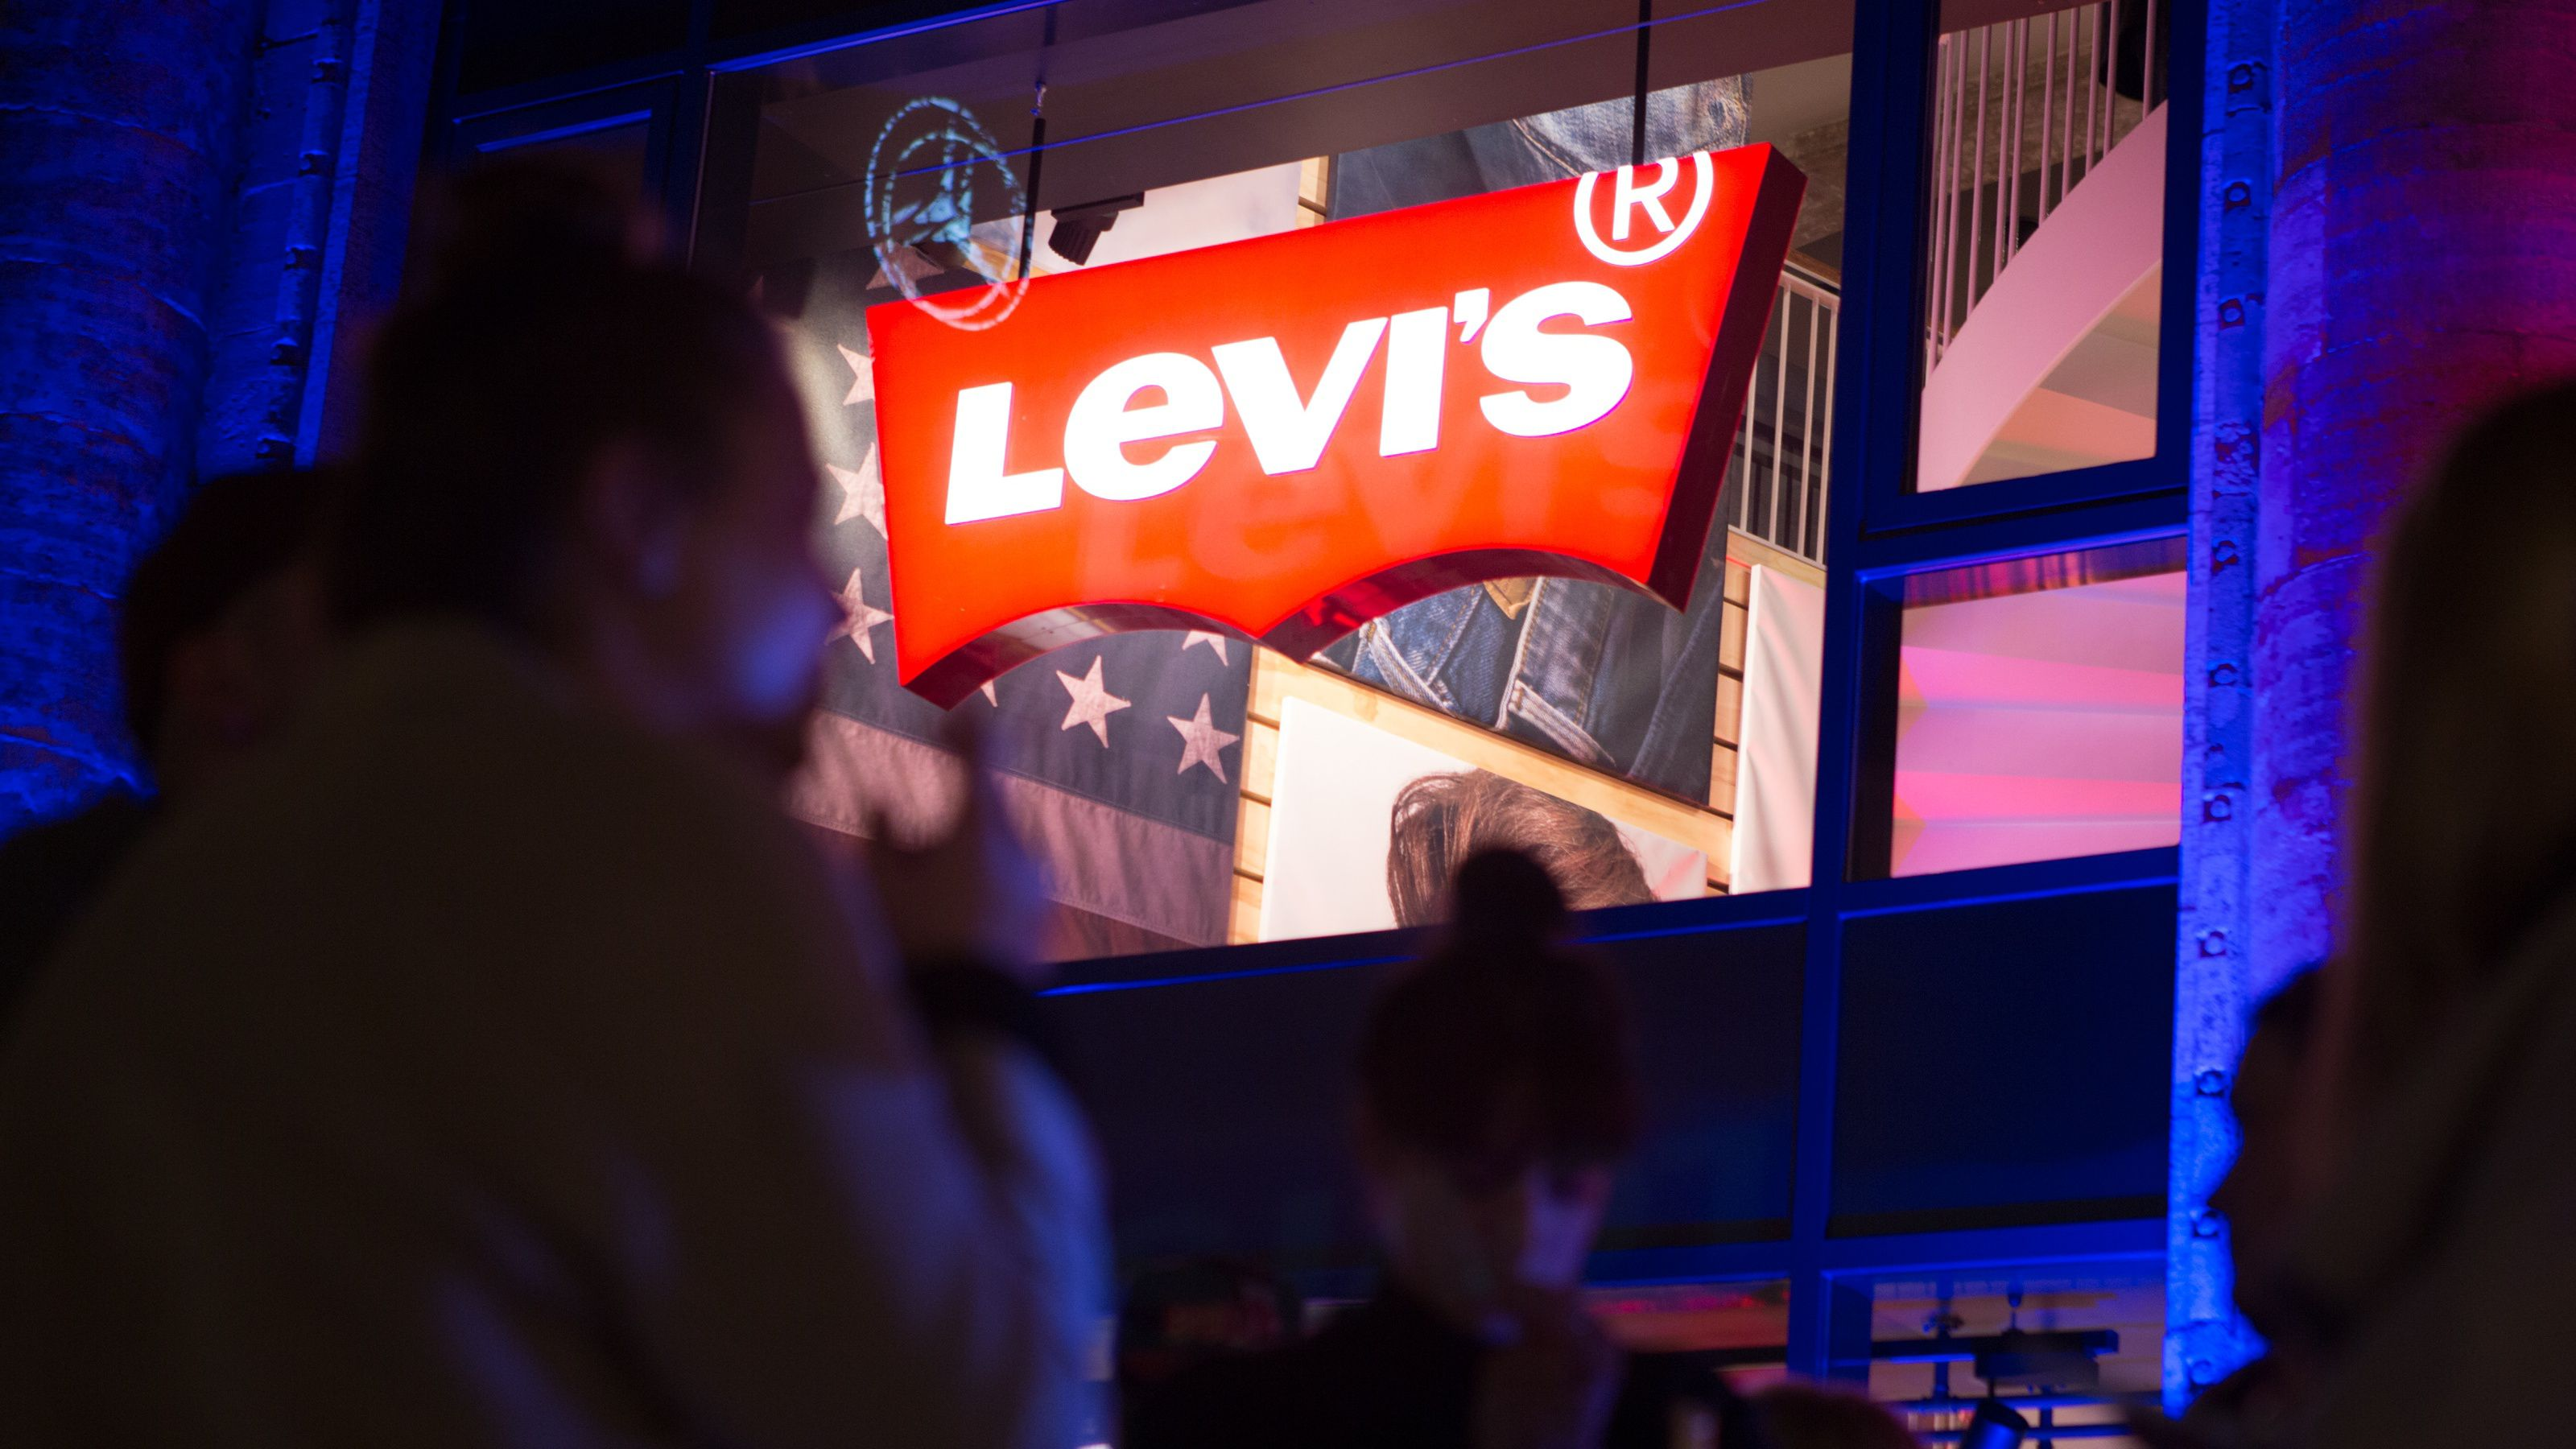 A view of the store entrance during the Levi's Flagship Store Re-Opening on March 25, 2015 in Berlin, Germany.